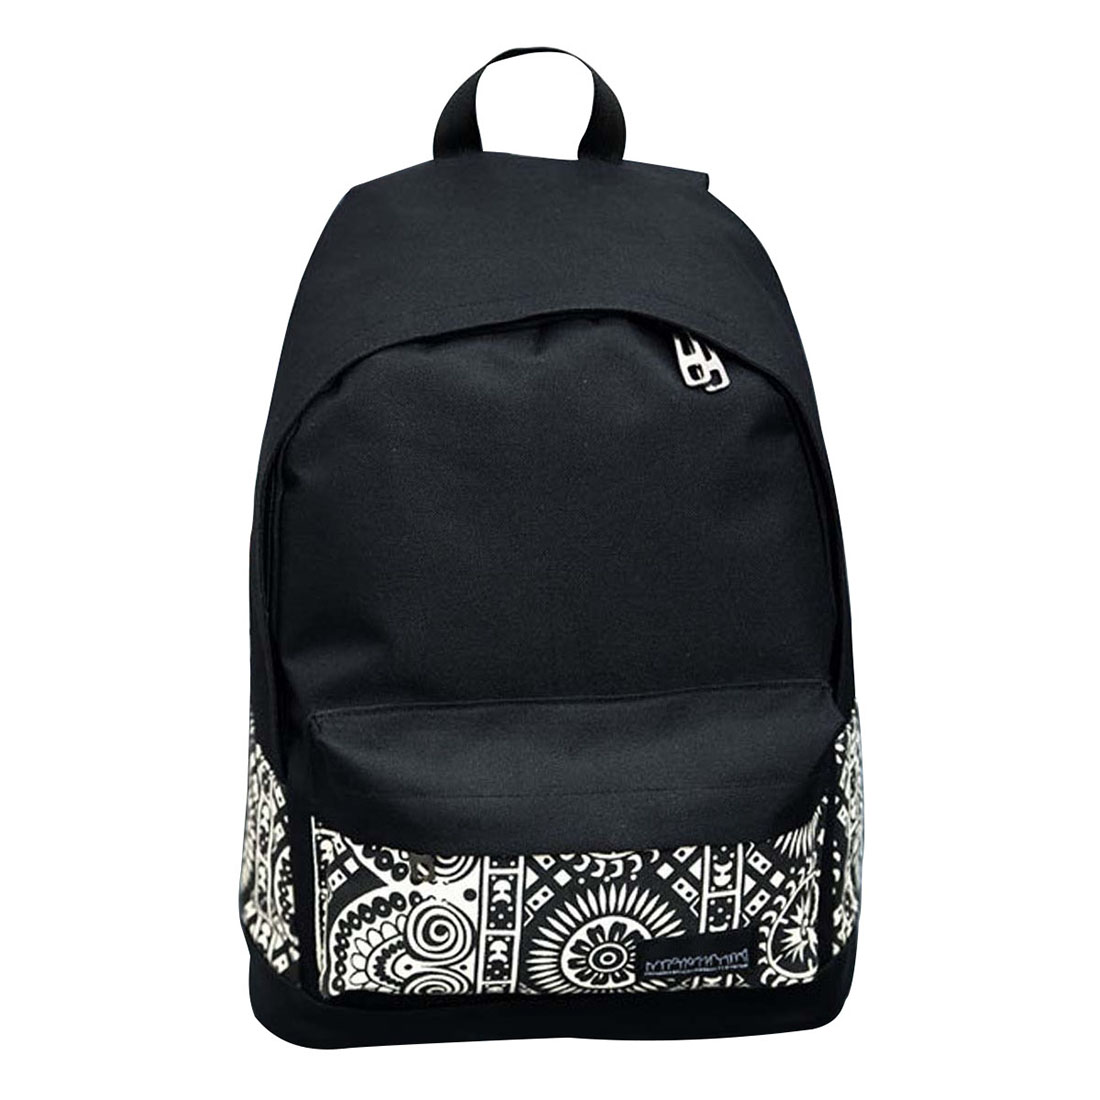 FGGS-Girls Women Canvas School Bag Travel Backpack Satchel Shoulder Bag Rucksack Black 4